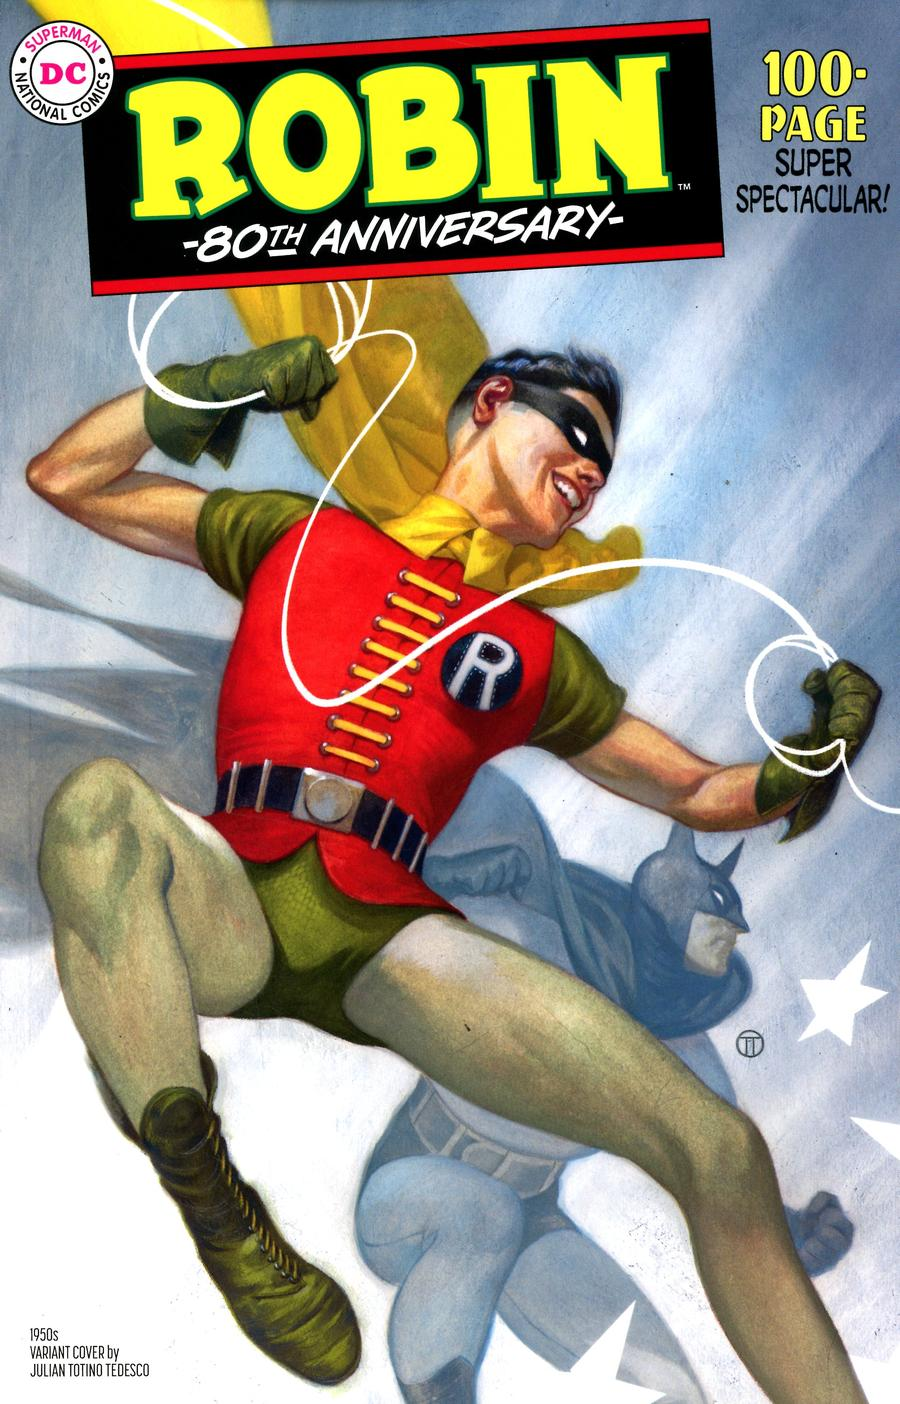 Robin 80th Anniversary 100-Page Super Spectacular #1 Cover C Variant Julian Totino Tedesco 1950s Cover